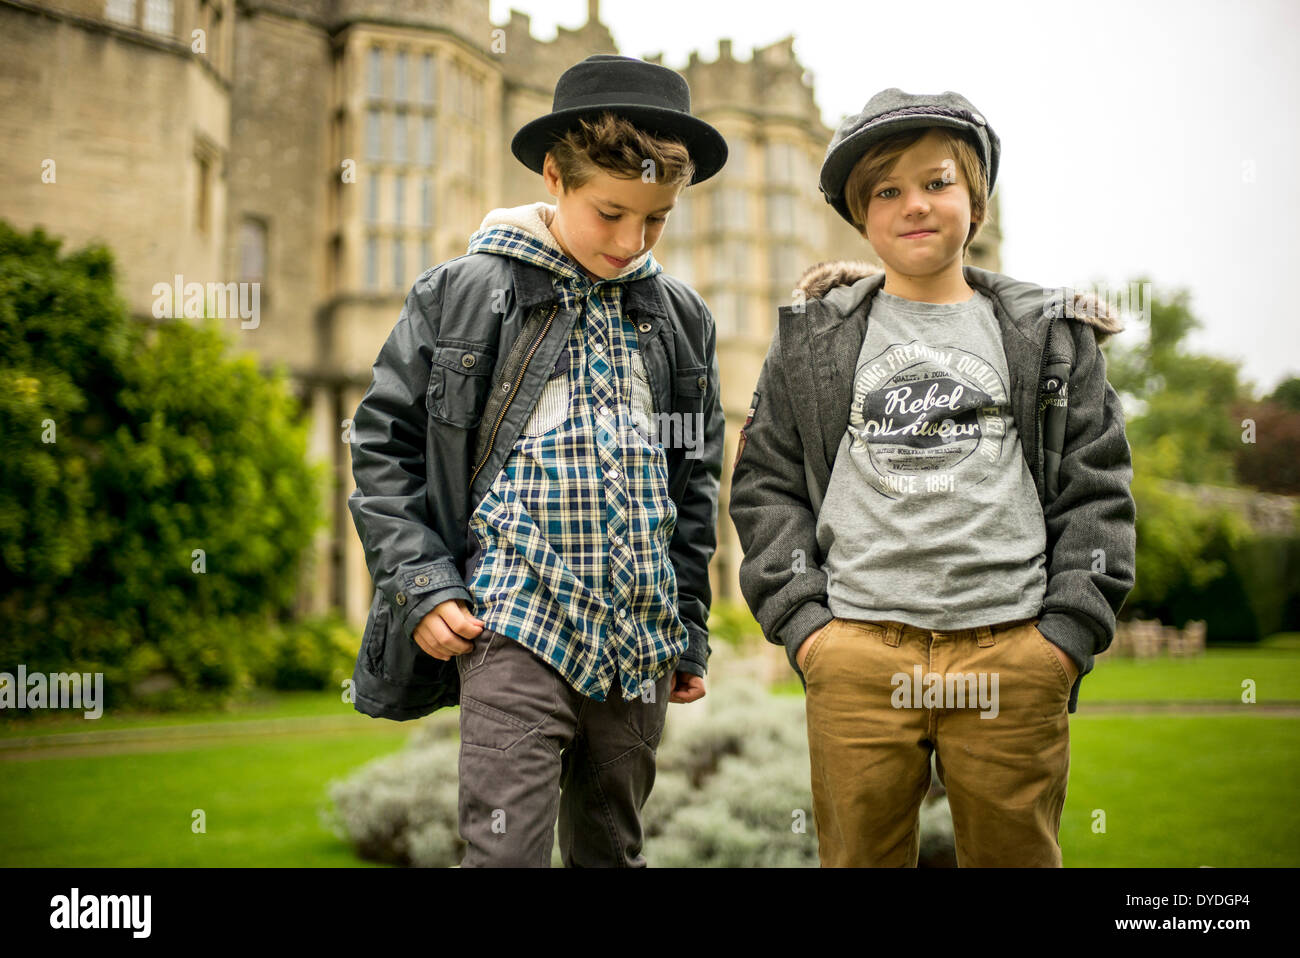 Two young boys outside Thornbury Castle. - Stock Image